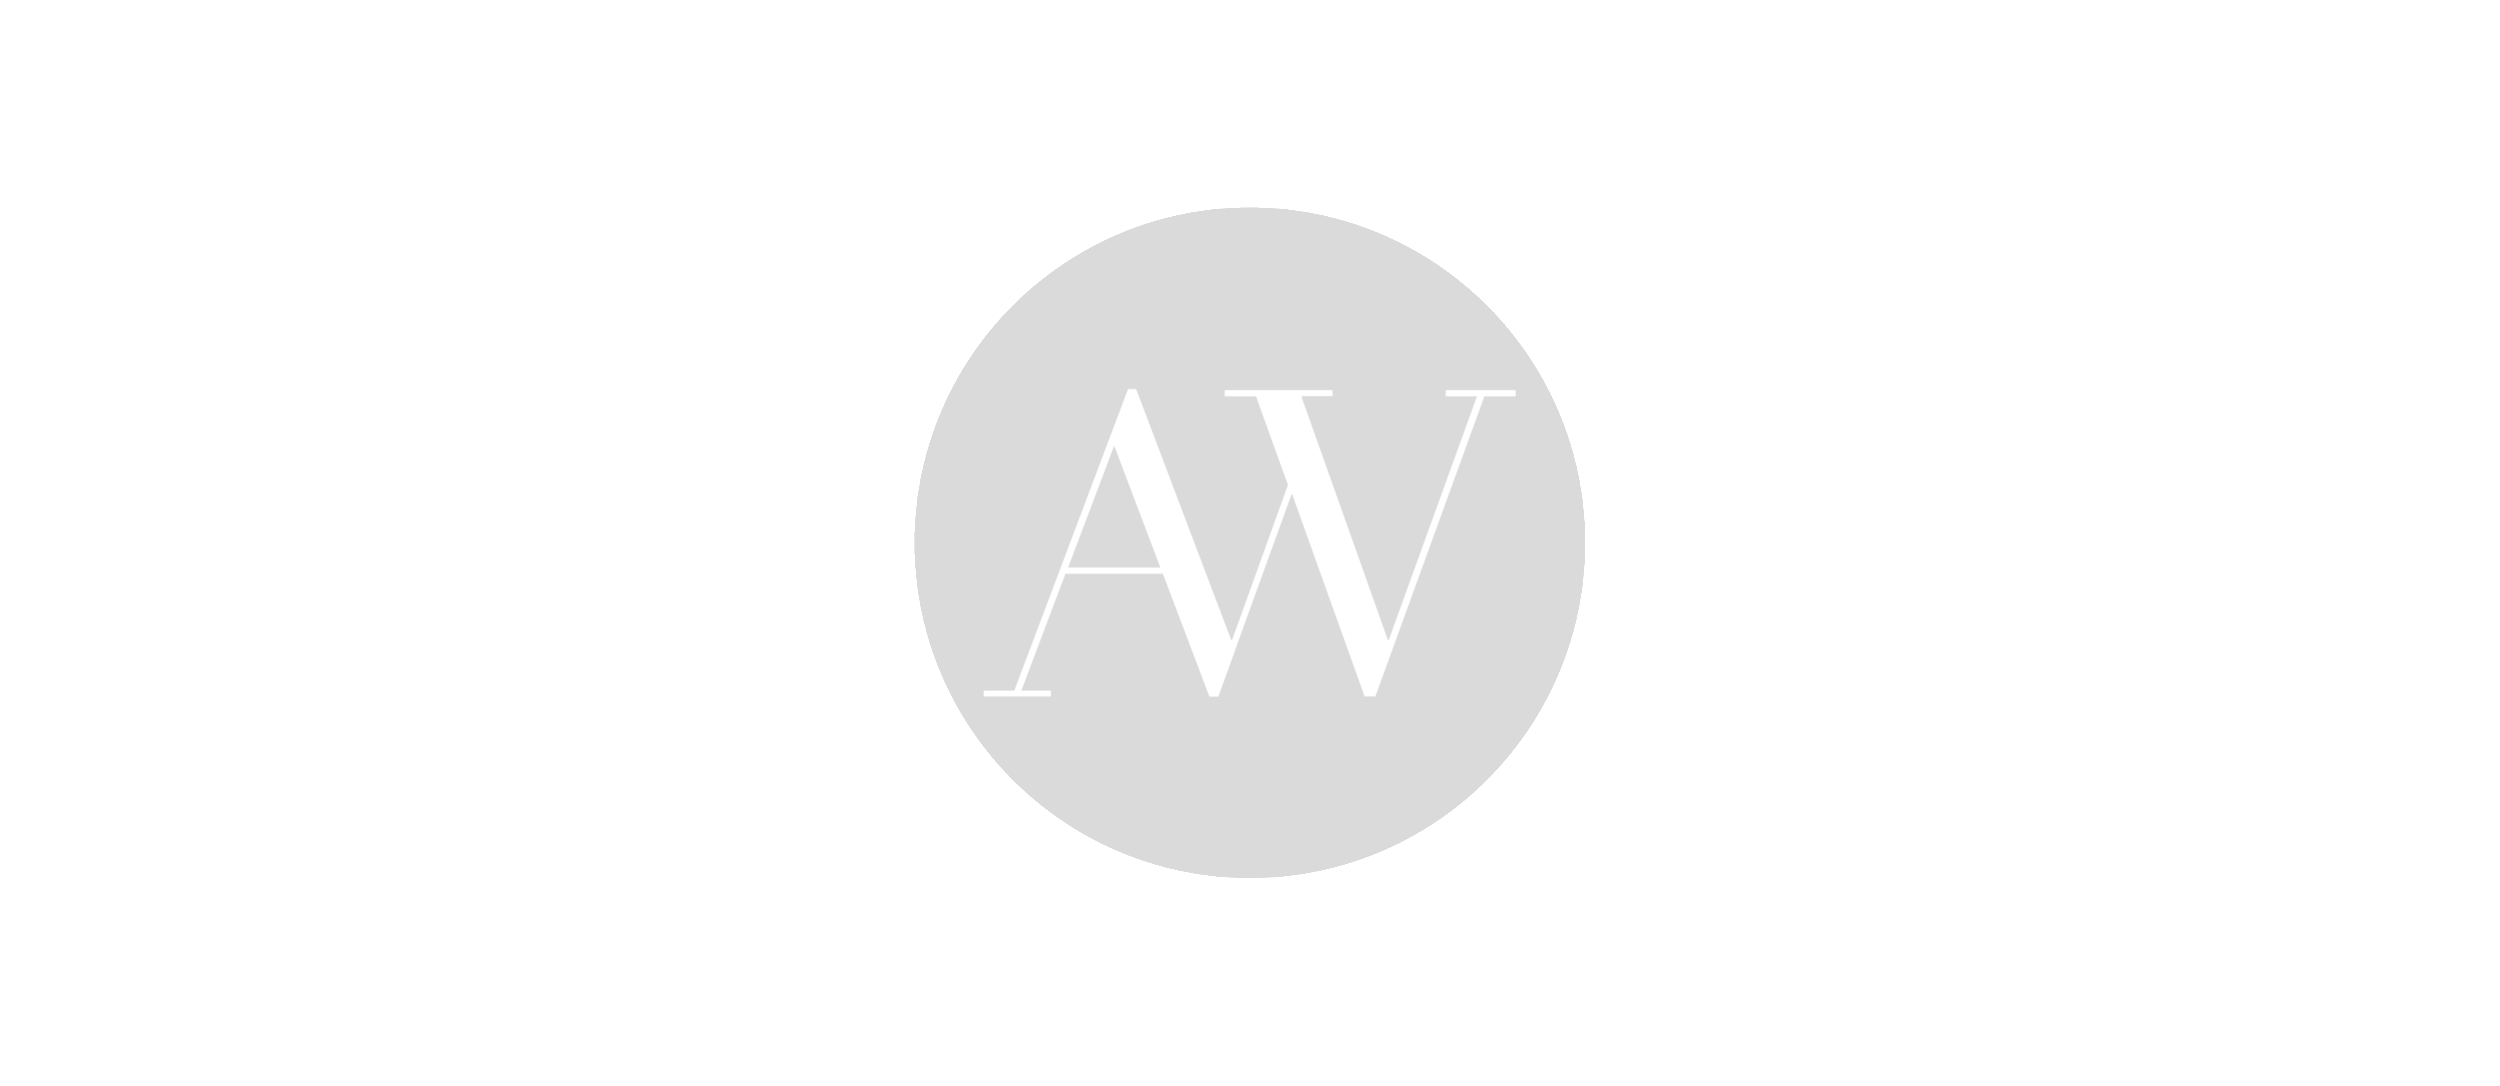 AW Grey Circle Logo-33.png